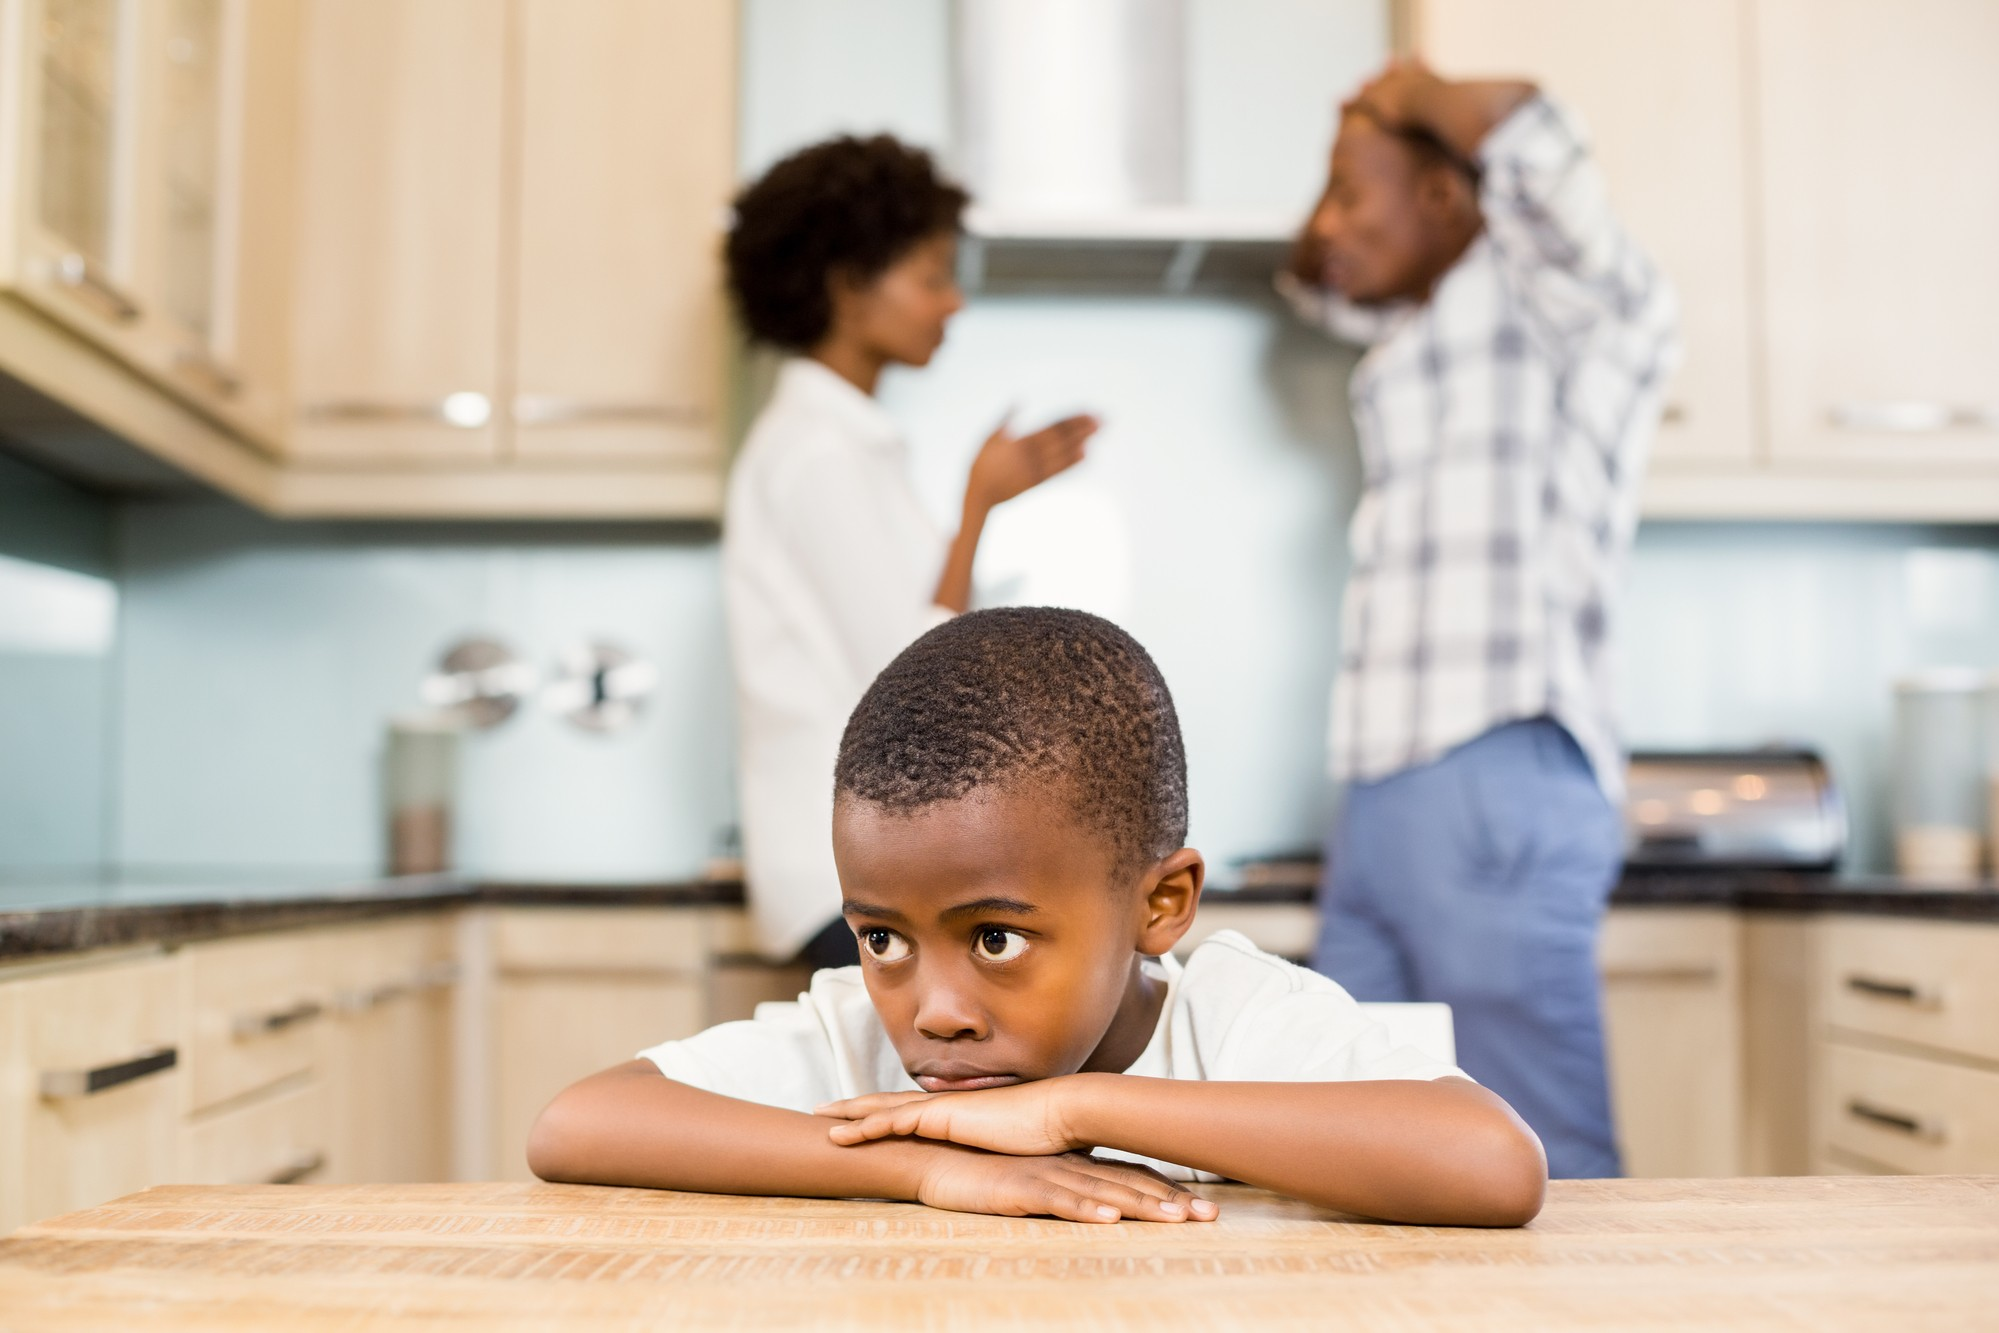 Help! My Child Is Expressing Suicidal Thoughts: Tips for Black Parents